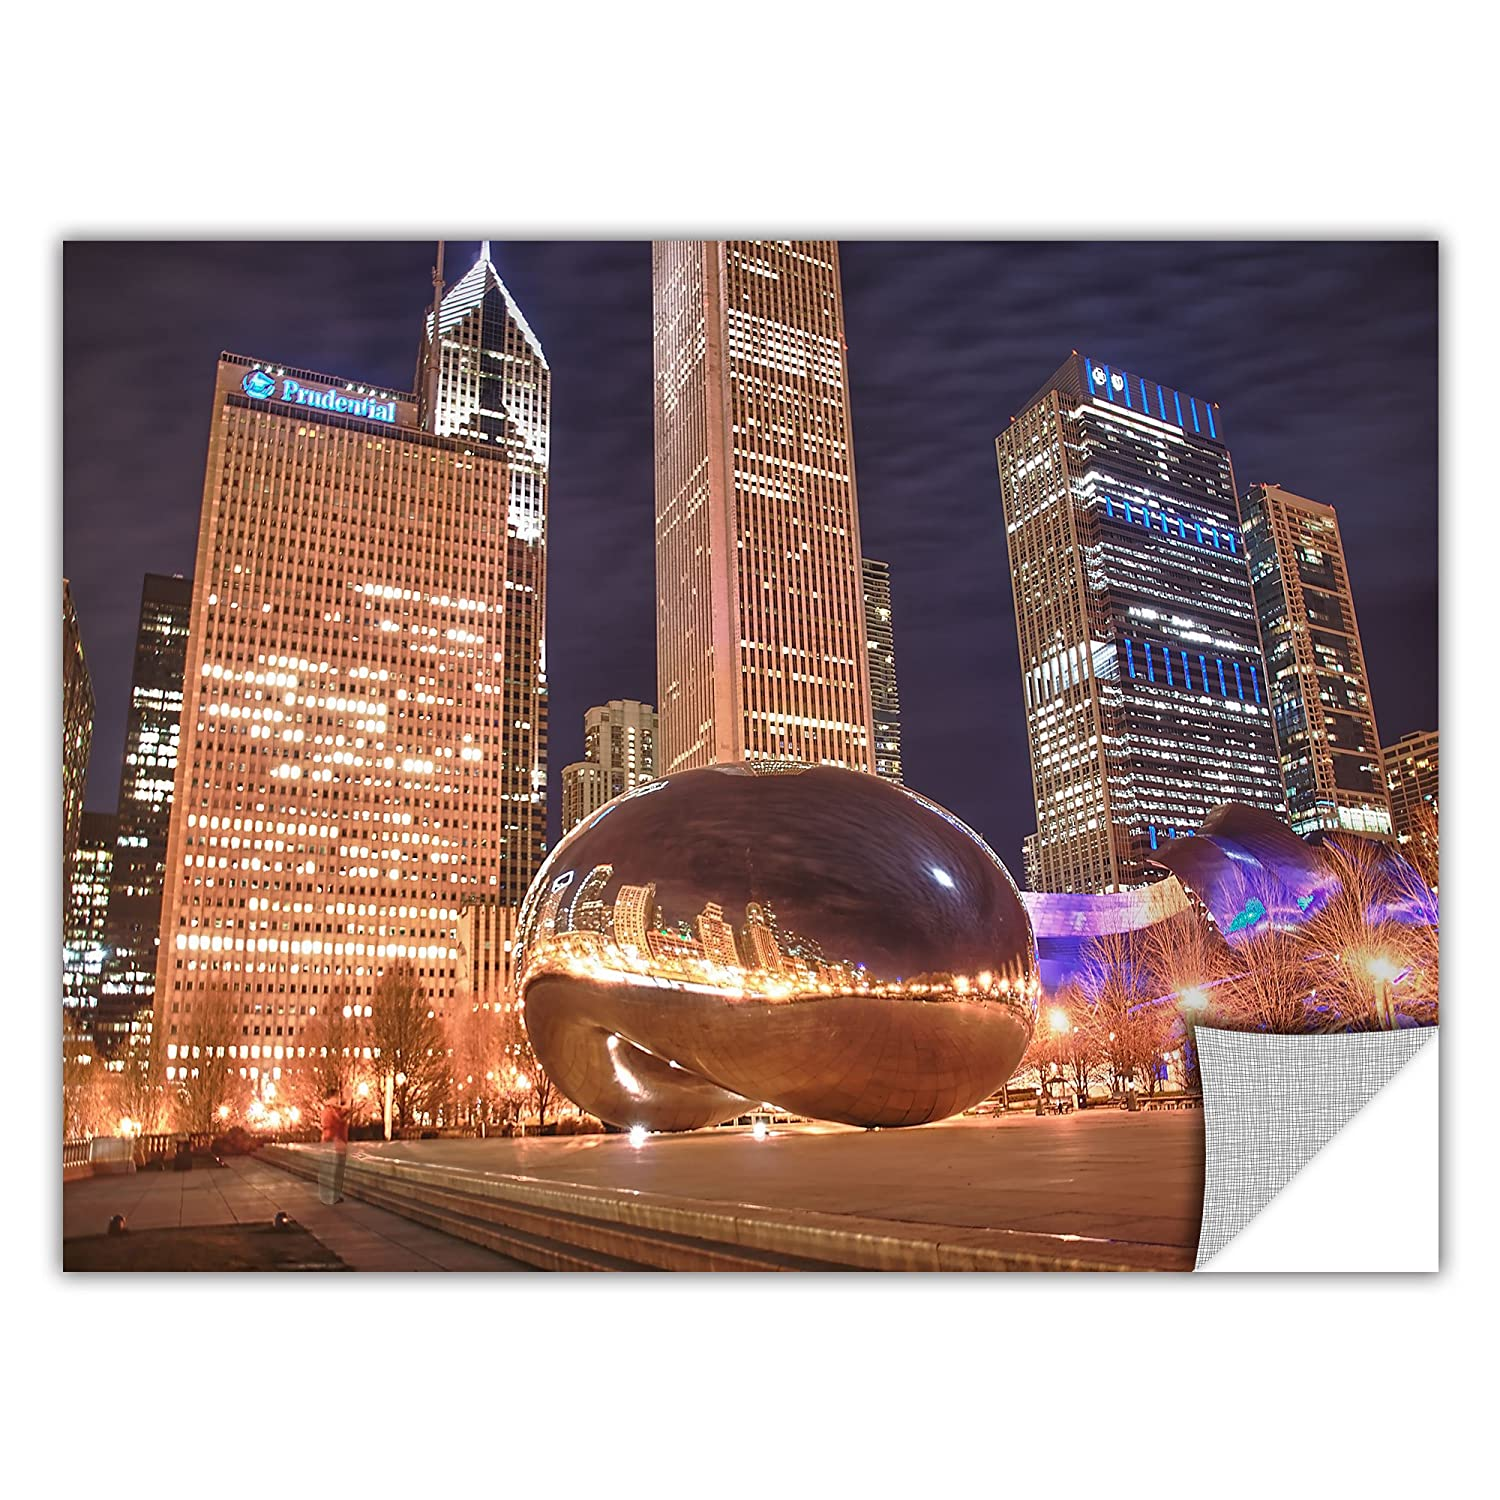 ArtWall Chicago-The Bean I Removable Graphic Wall Art by Dan Wilson 12 by 18-Inch